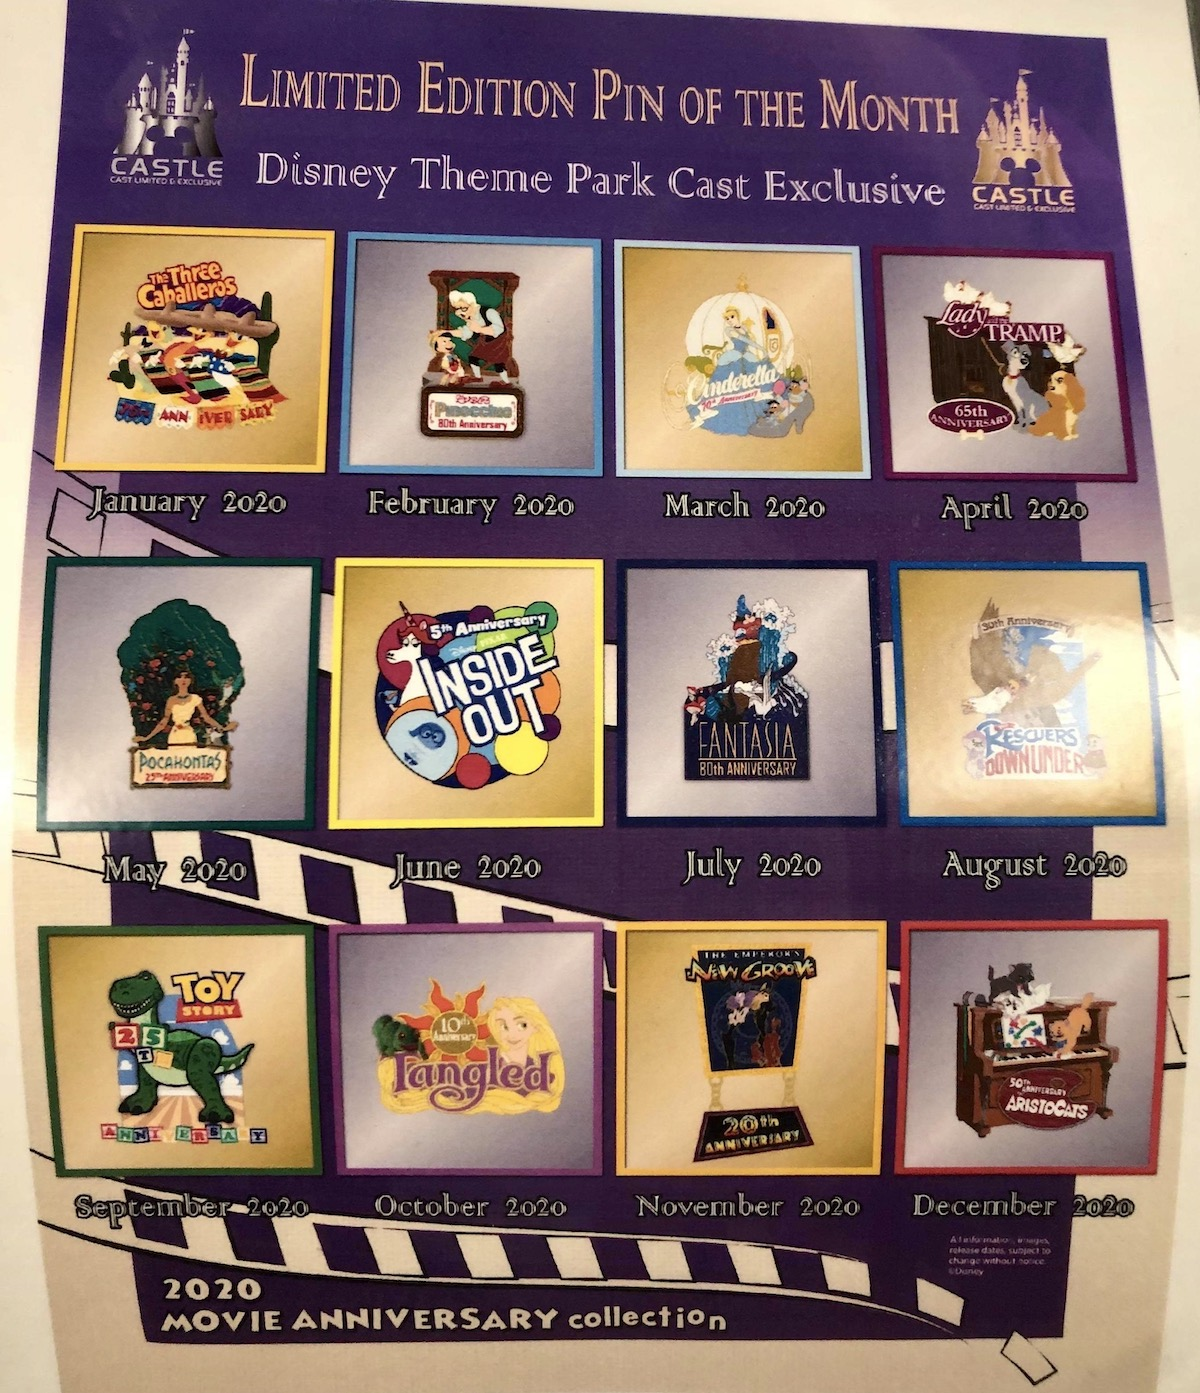 Cast Member 2020 Movie Anniversary Pin Collection